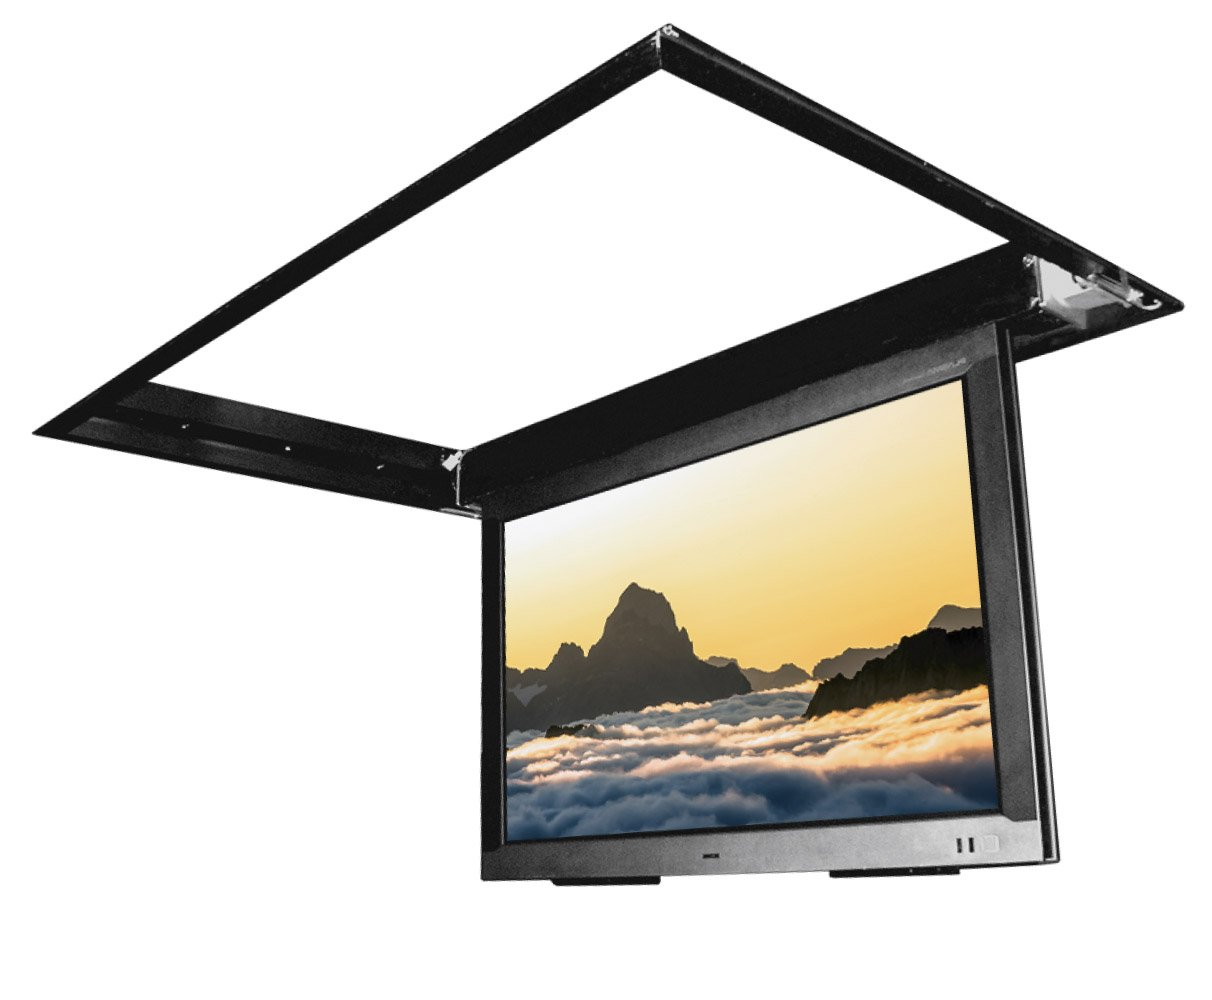 mount motorized ceiling flat for tv panel bracket enlarge in series to modular click tilting peerless